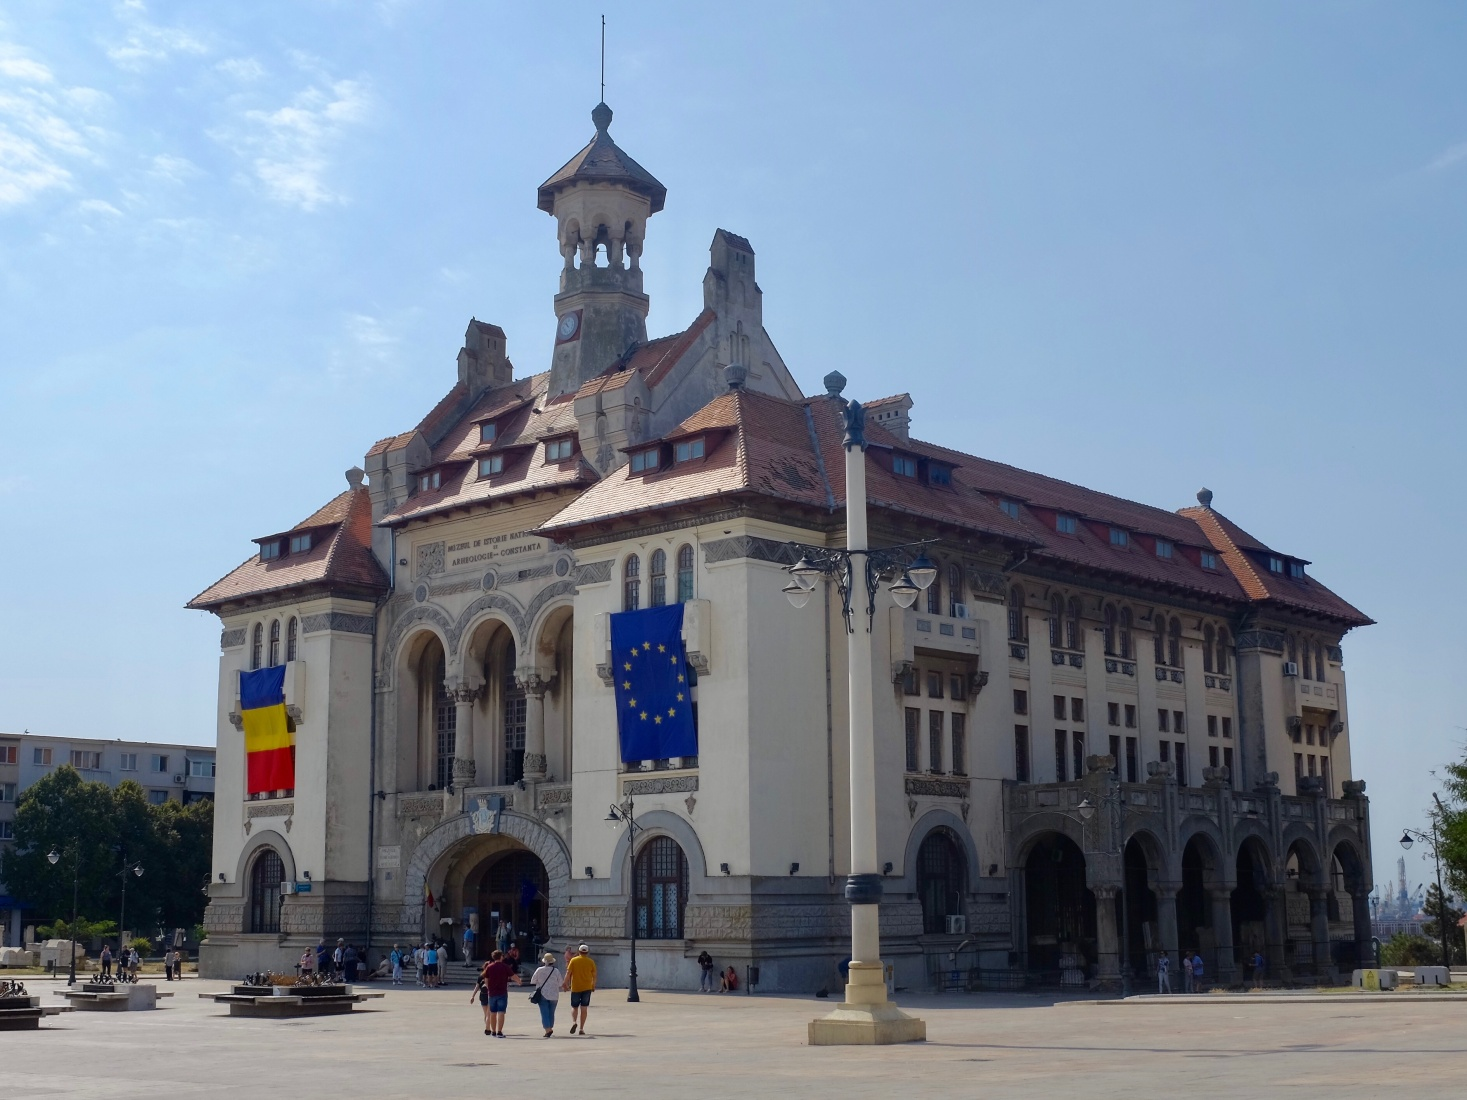 The National History & Archaeological Museum in Constanța, Romania, in an early 20th century mansion on Ovid Square.